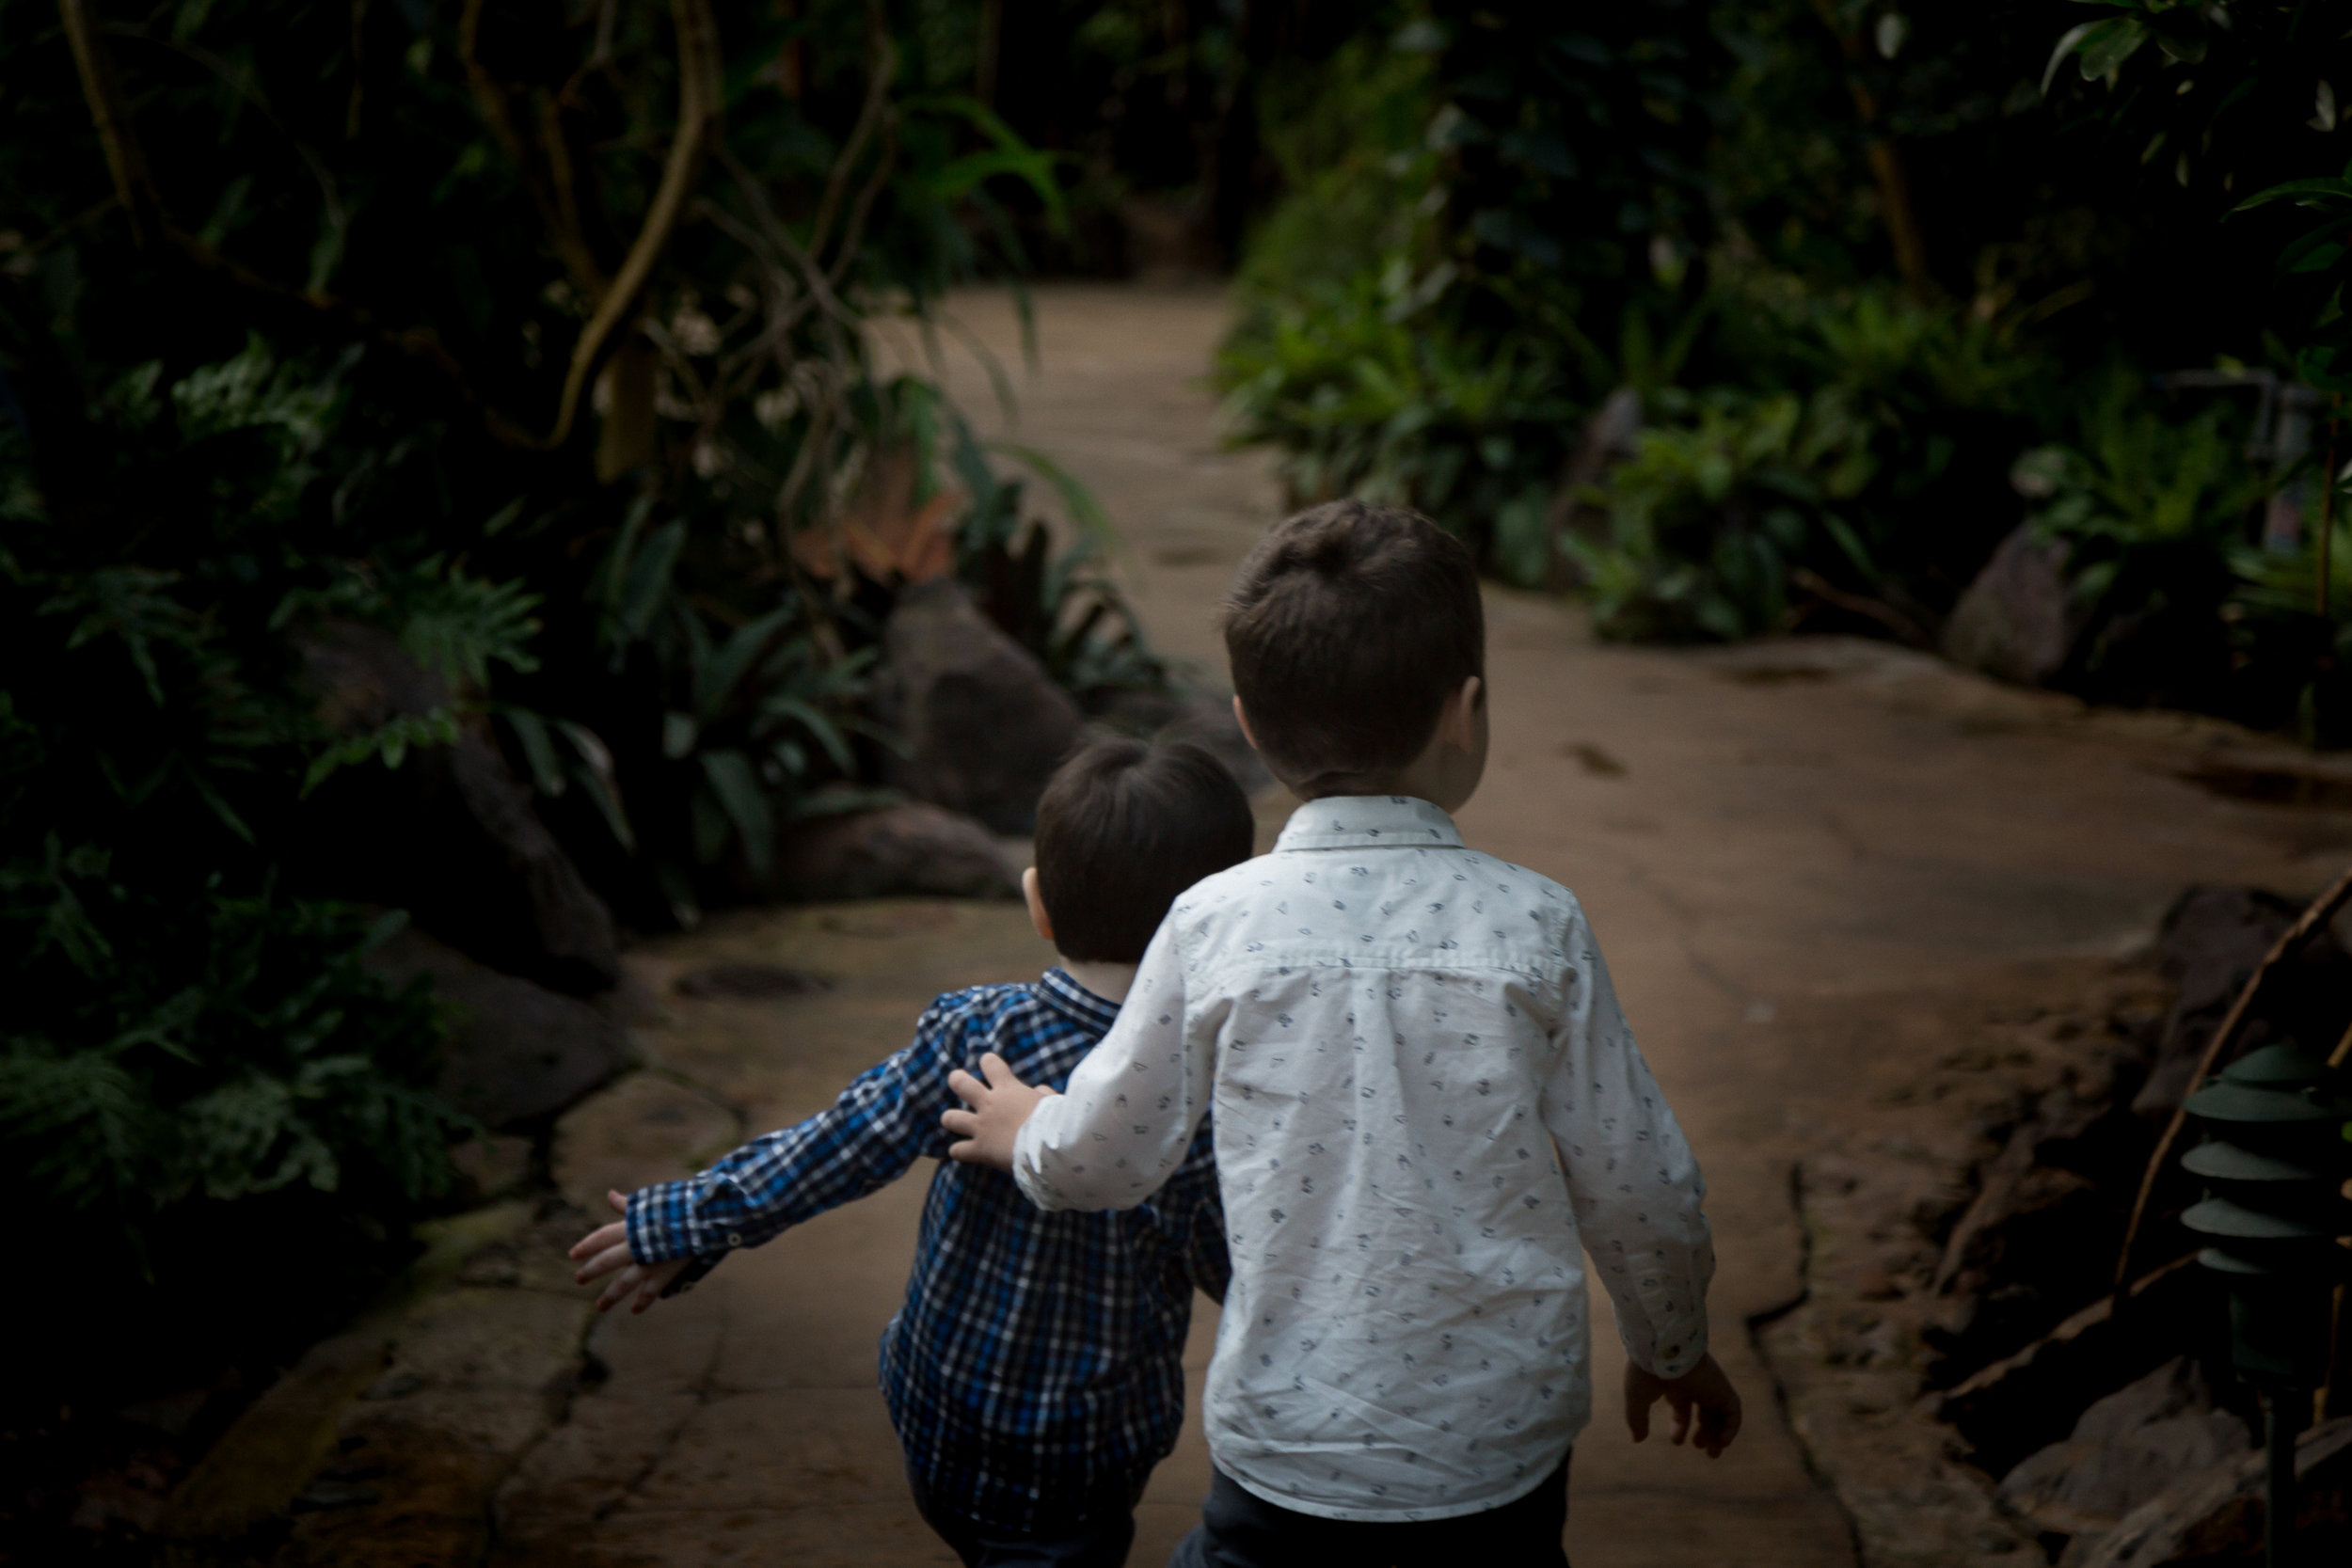 Chicago_Photographer_Garfield_Park_Conservatory_Family_Holiday-10.jpg